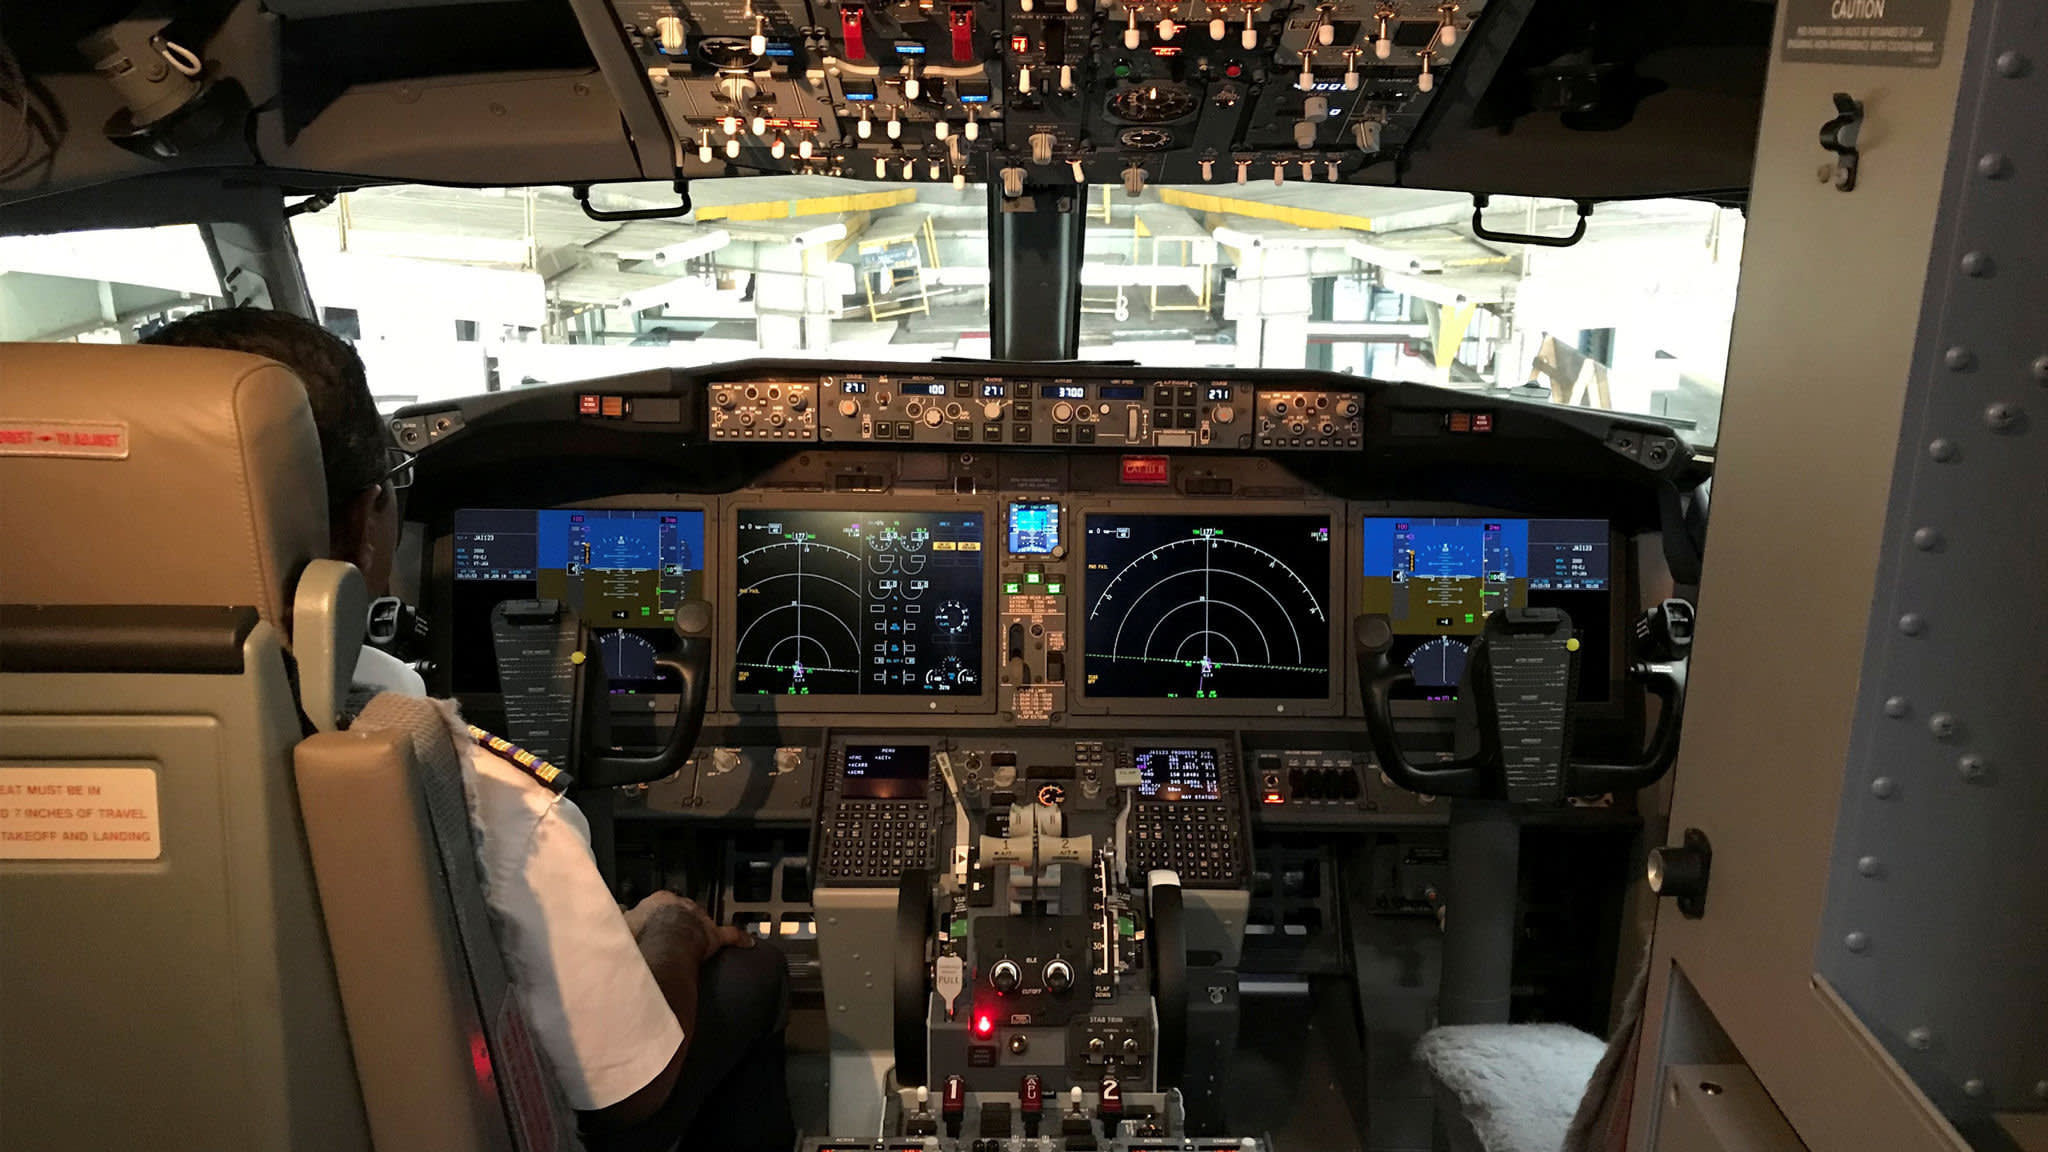 Vanguard raises 'concerns' with Boeing leaders over 737